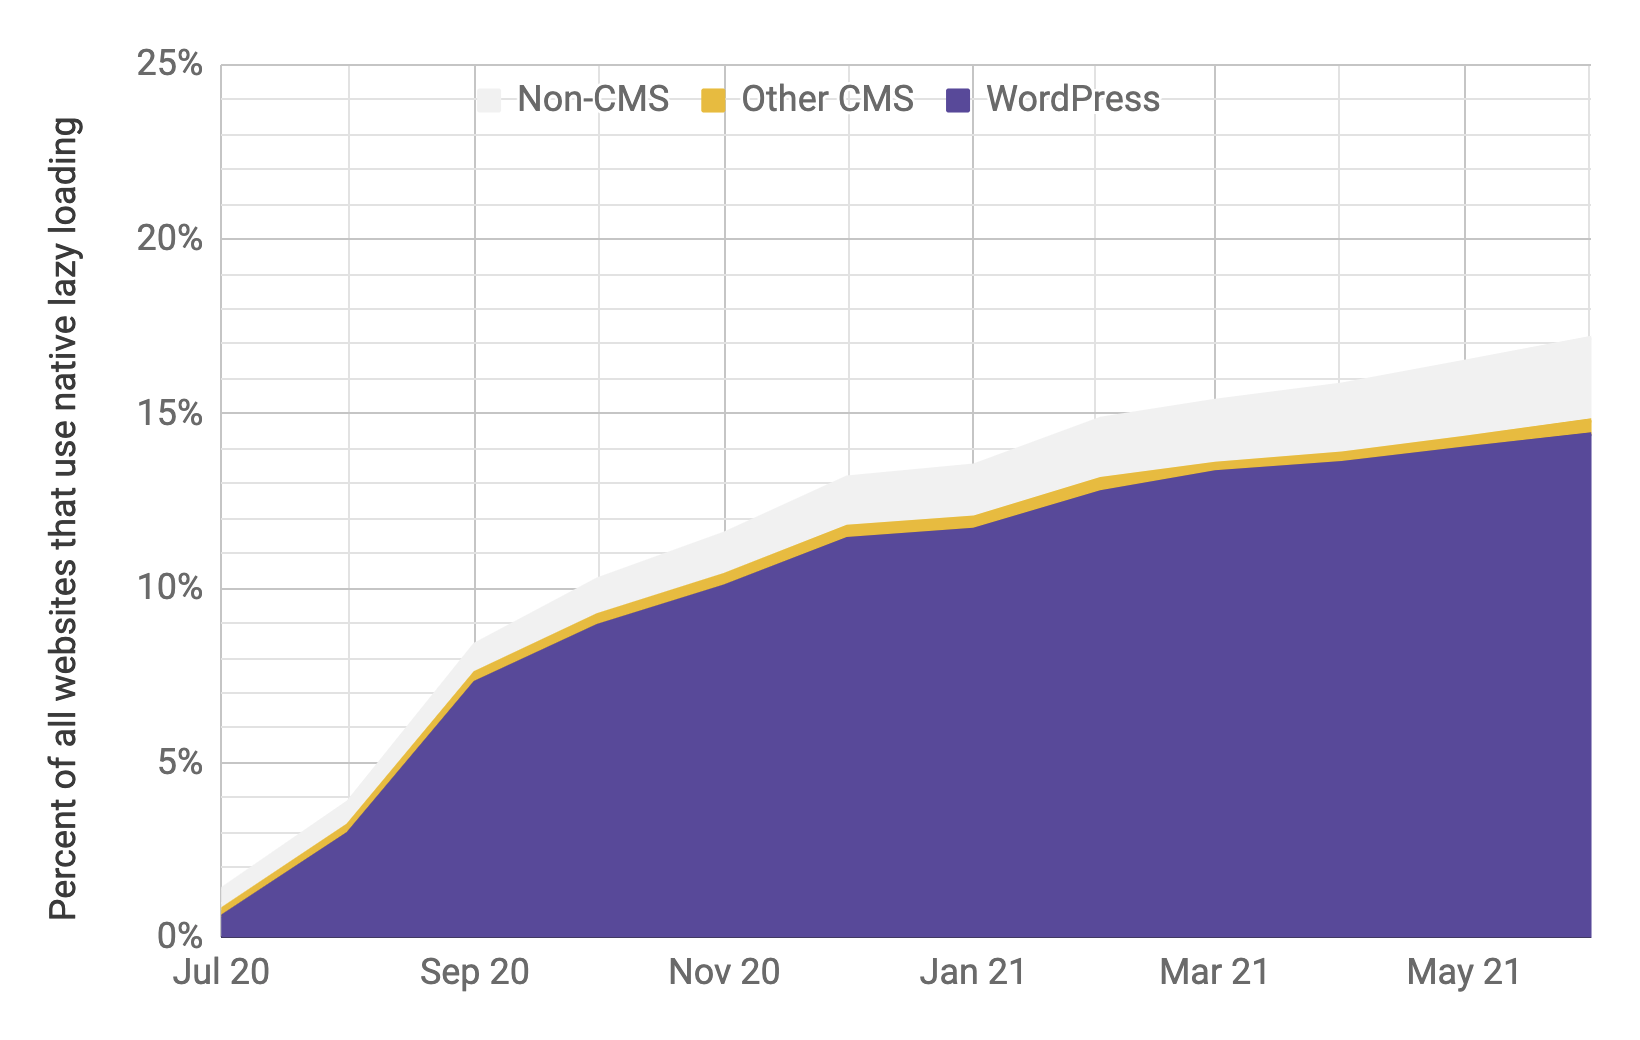 Timeseries chart of lazy-loading adoption with WordPress being the predominant player compared to other CMSs and non-CMSs, with similar proportions to the previous chart. Total adoption is shown to have rapidly increased from 1% to 17% from July 2020 to June 2021.